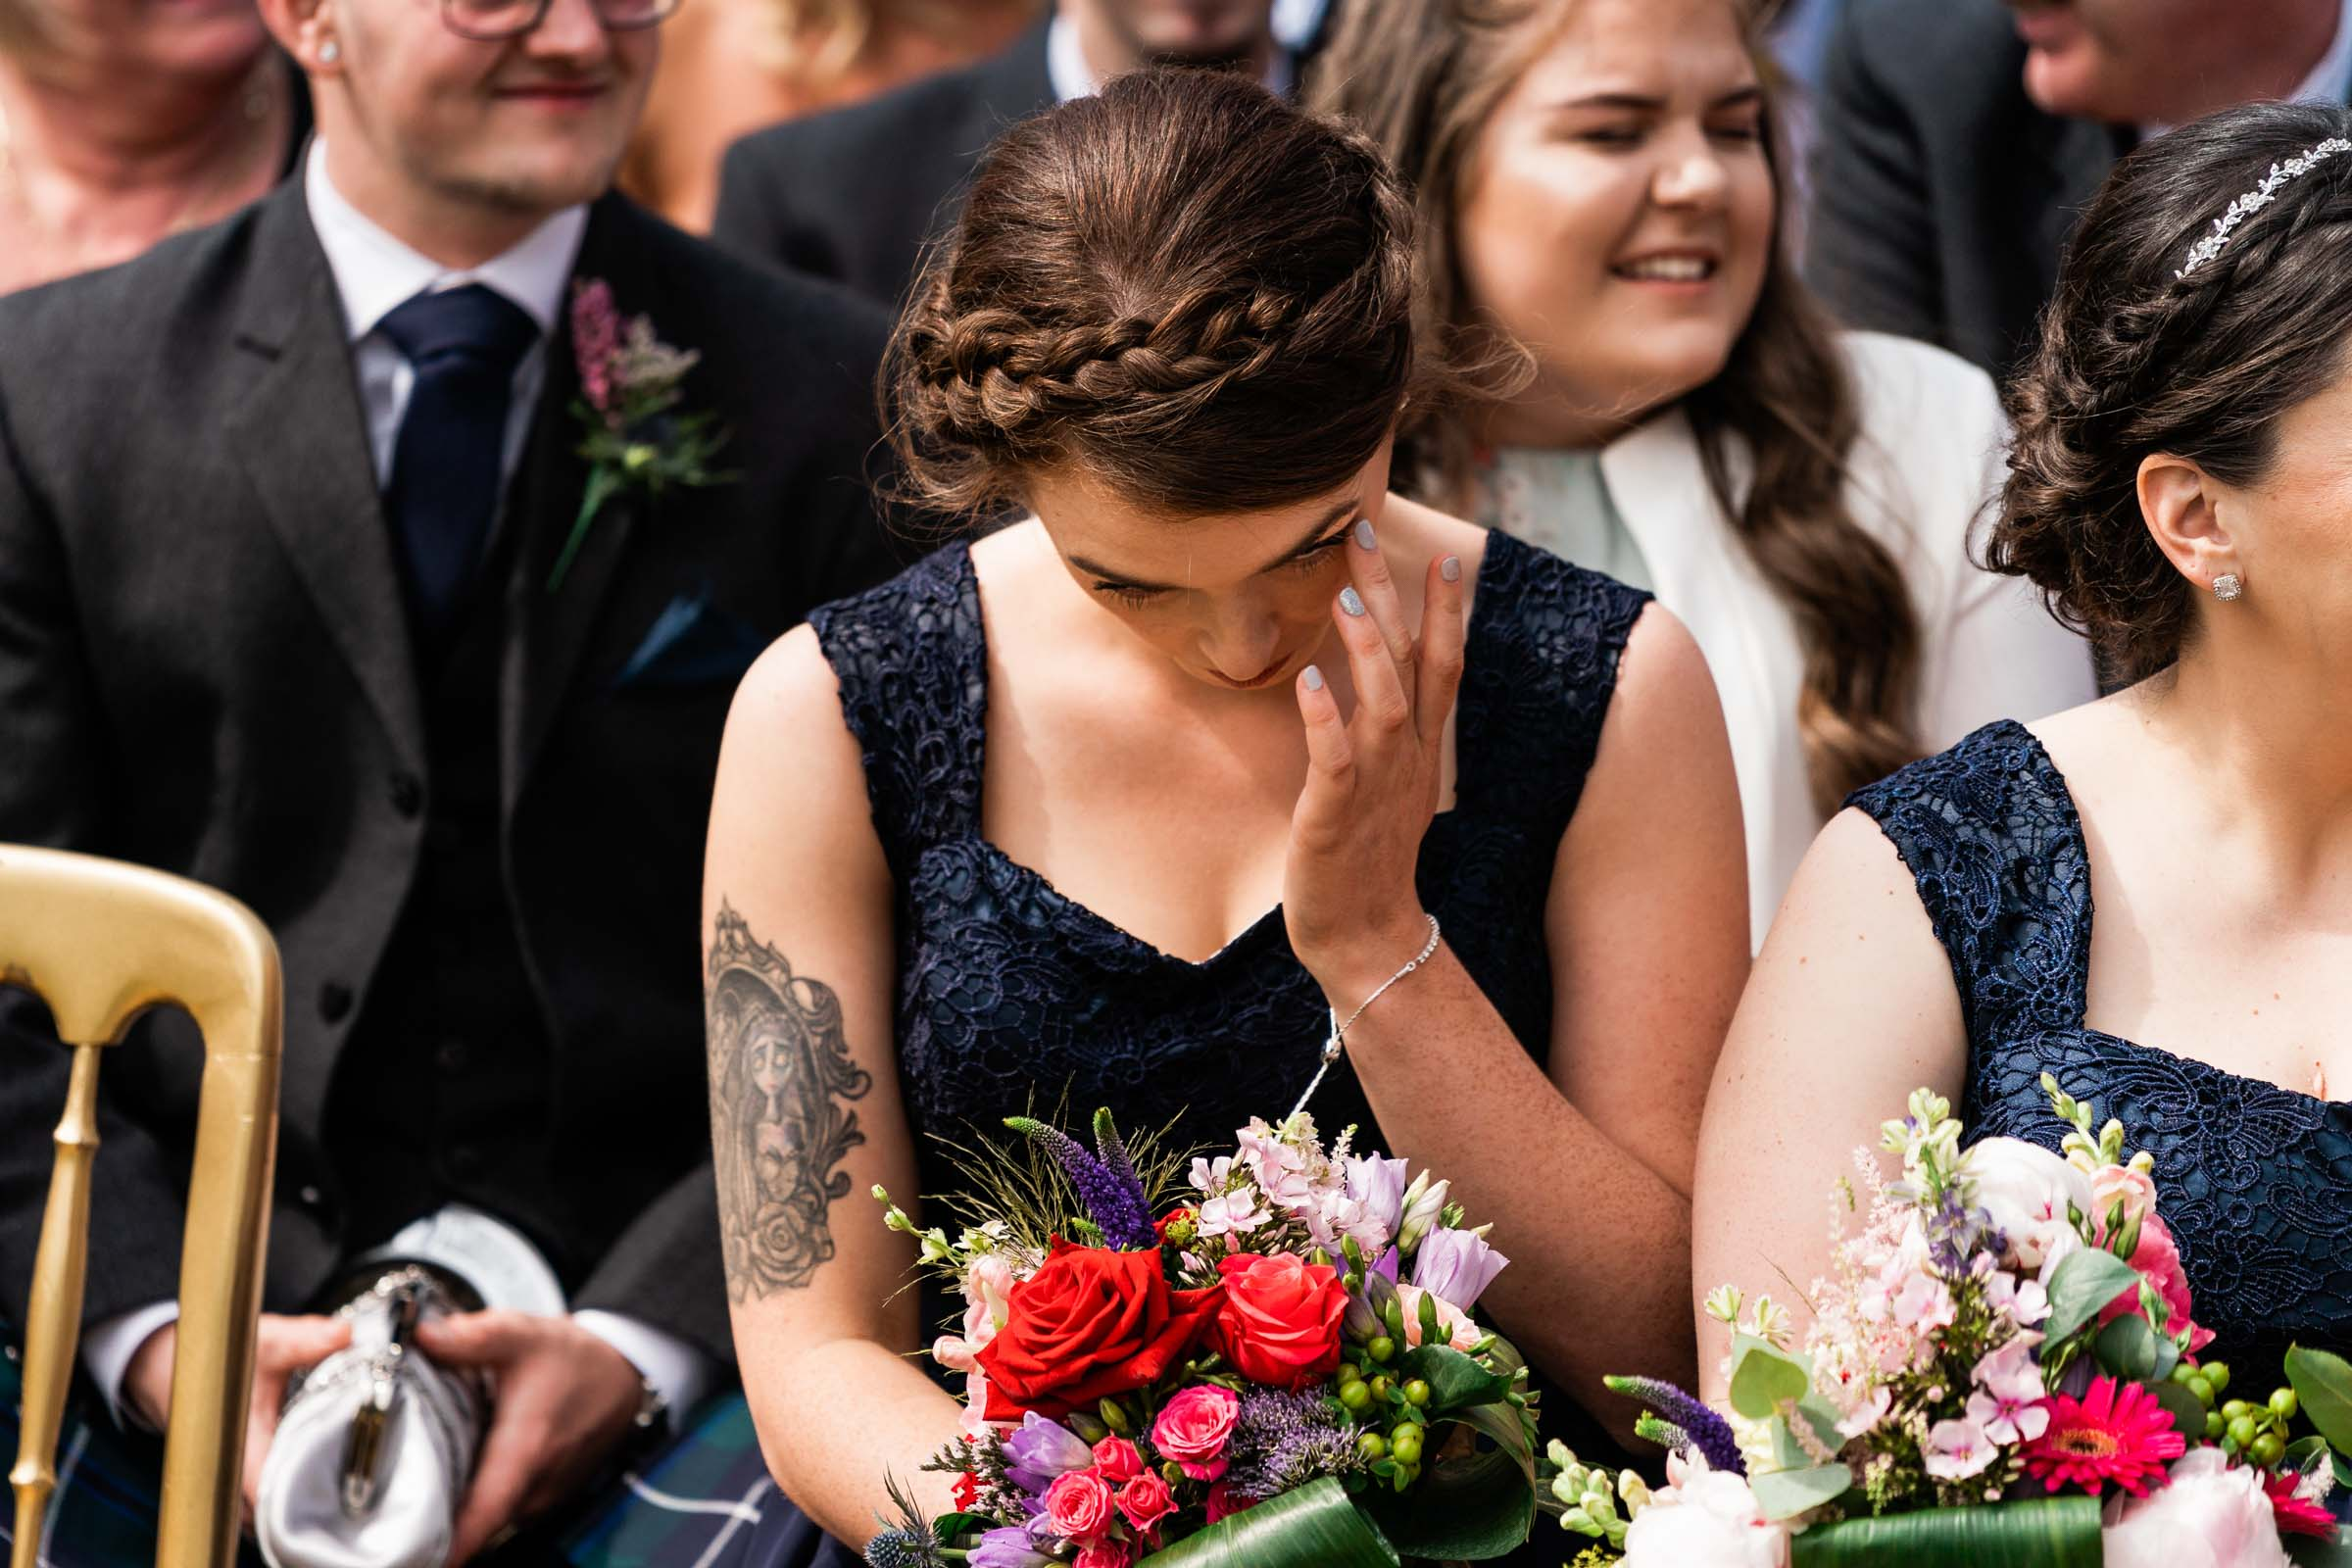 ayrshire-clairebarry-wedding-dearlyphotography (2 of 5).jpg